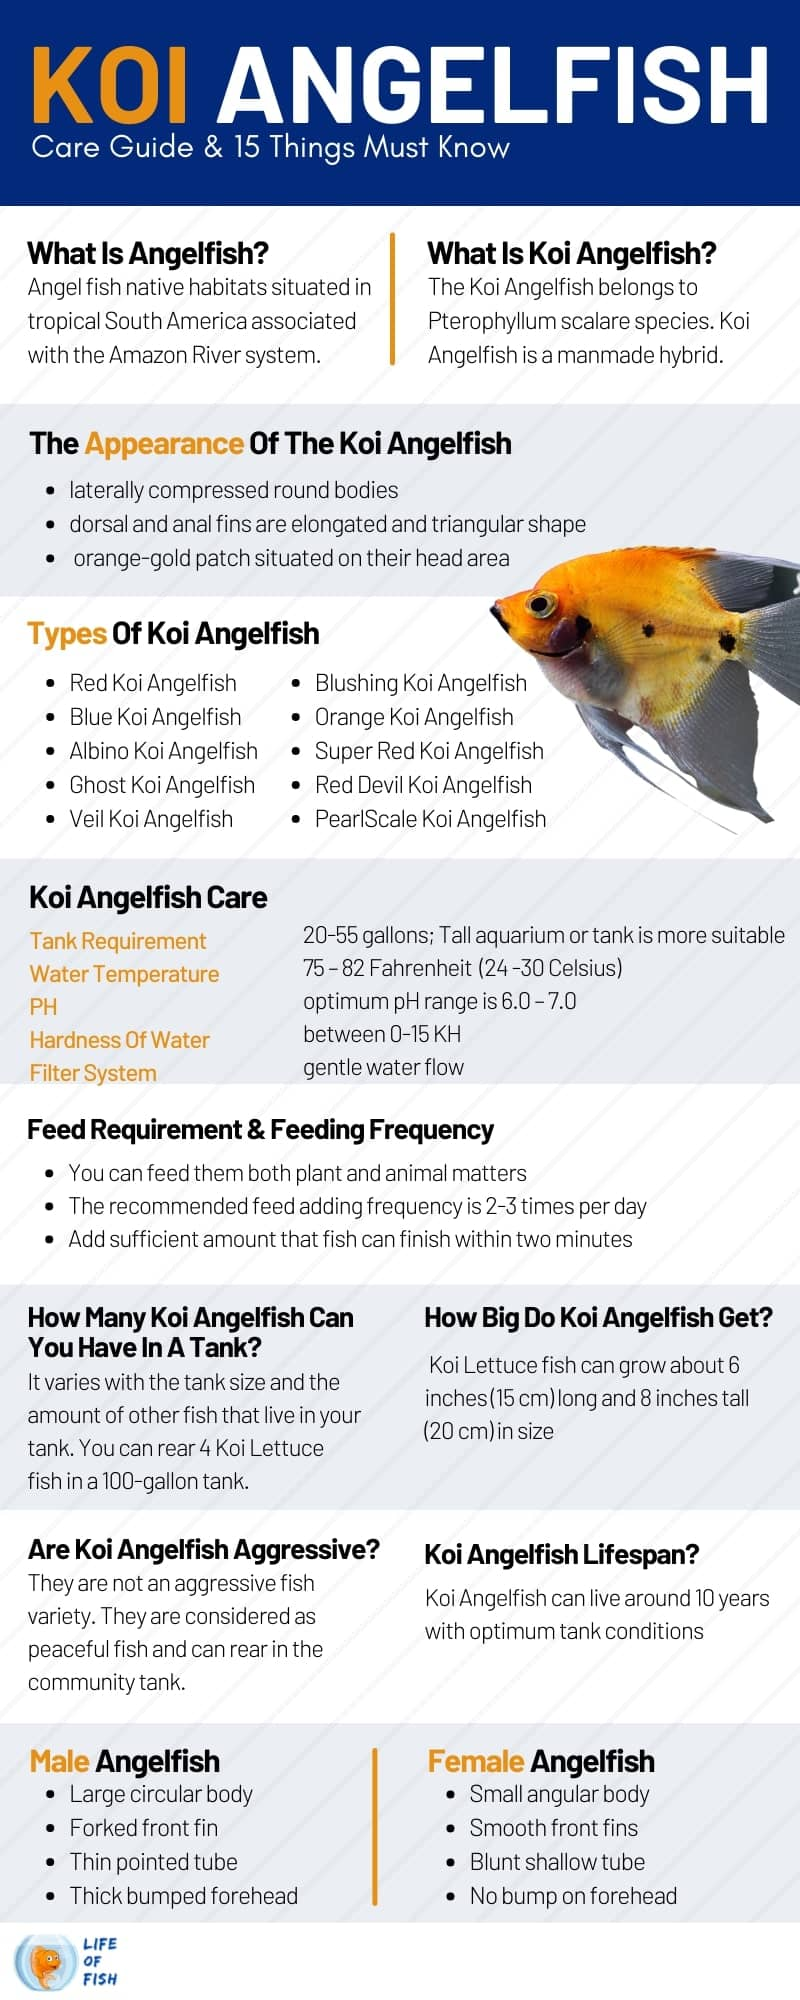 Koi Angelfish Care Guide & 15 Things Must Know infographic